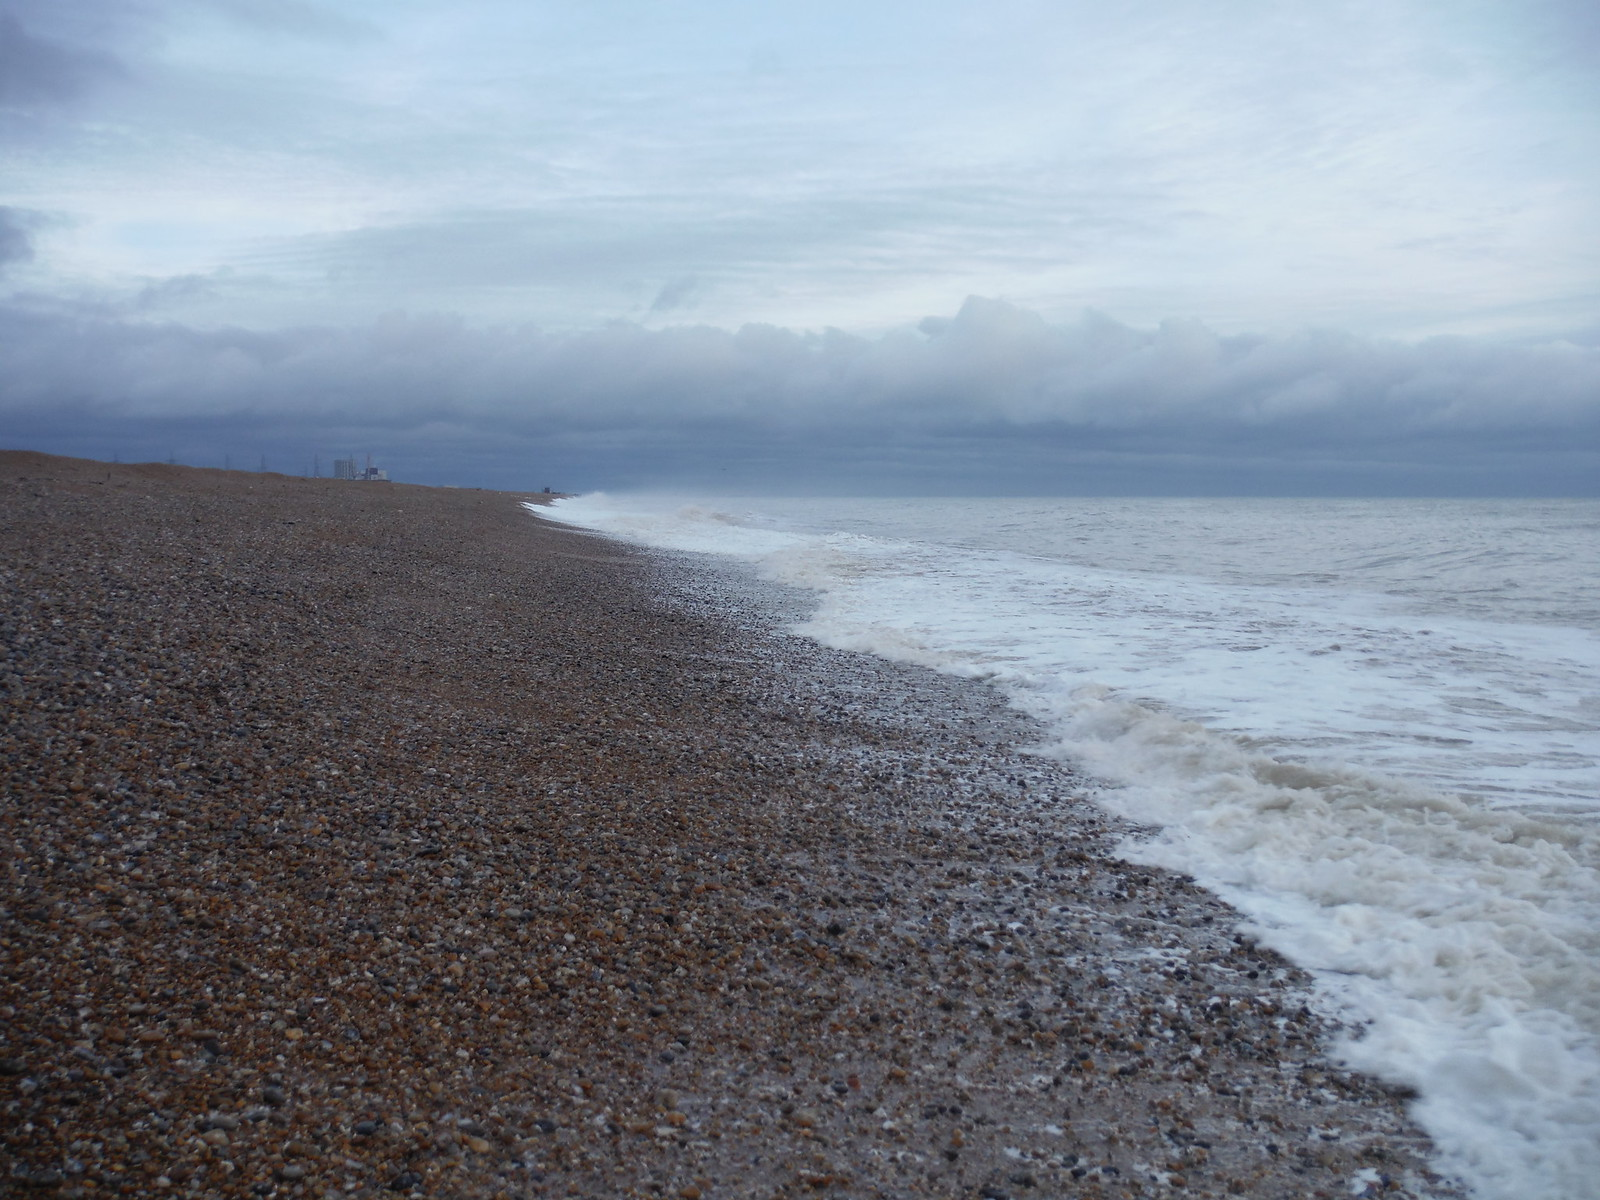 The Endless Shingle Beach SWC 154 - Rye to Dungeness and Lydd-on-Sea or Lydd or Circular